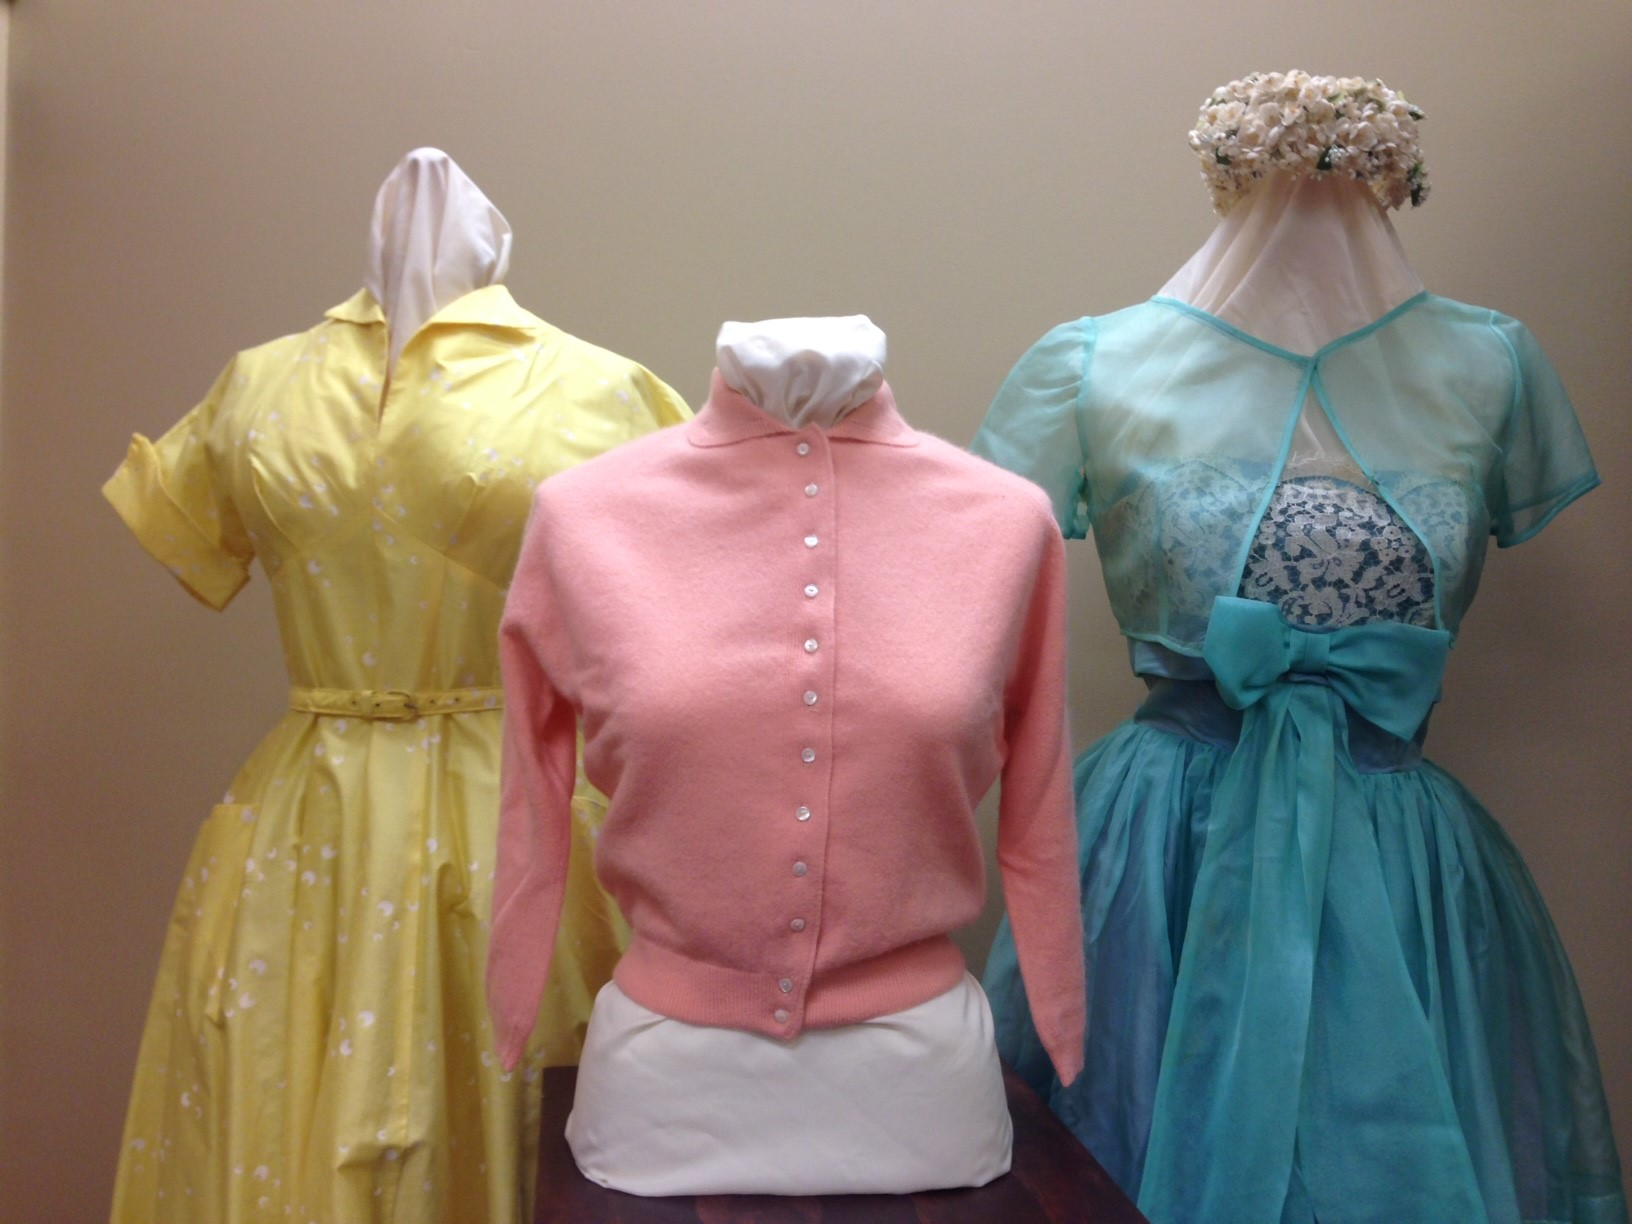 1950s ensembles in the Lois Jett Historic Costume Collection